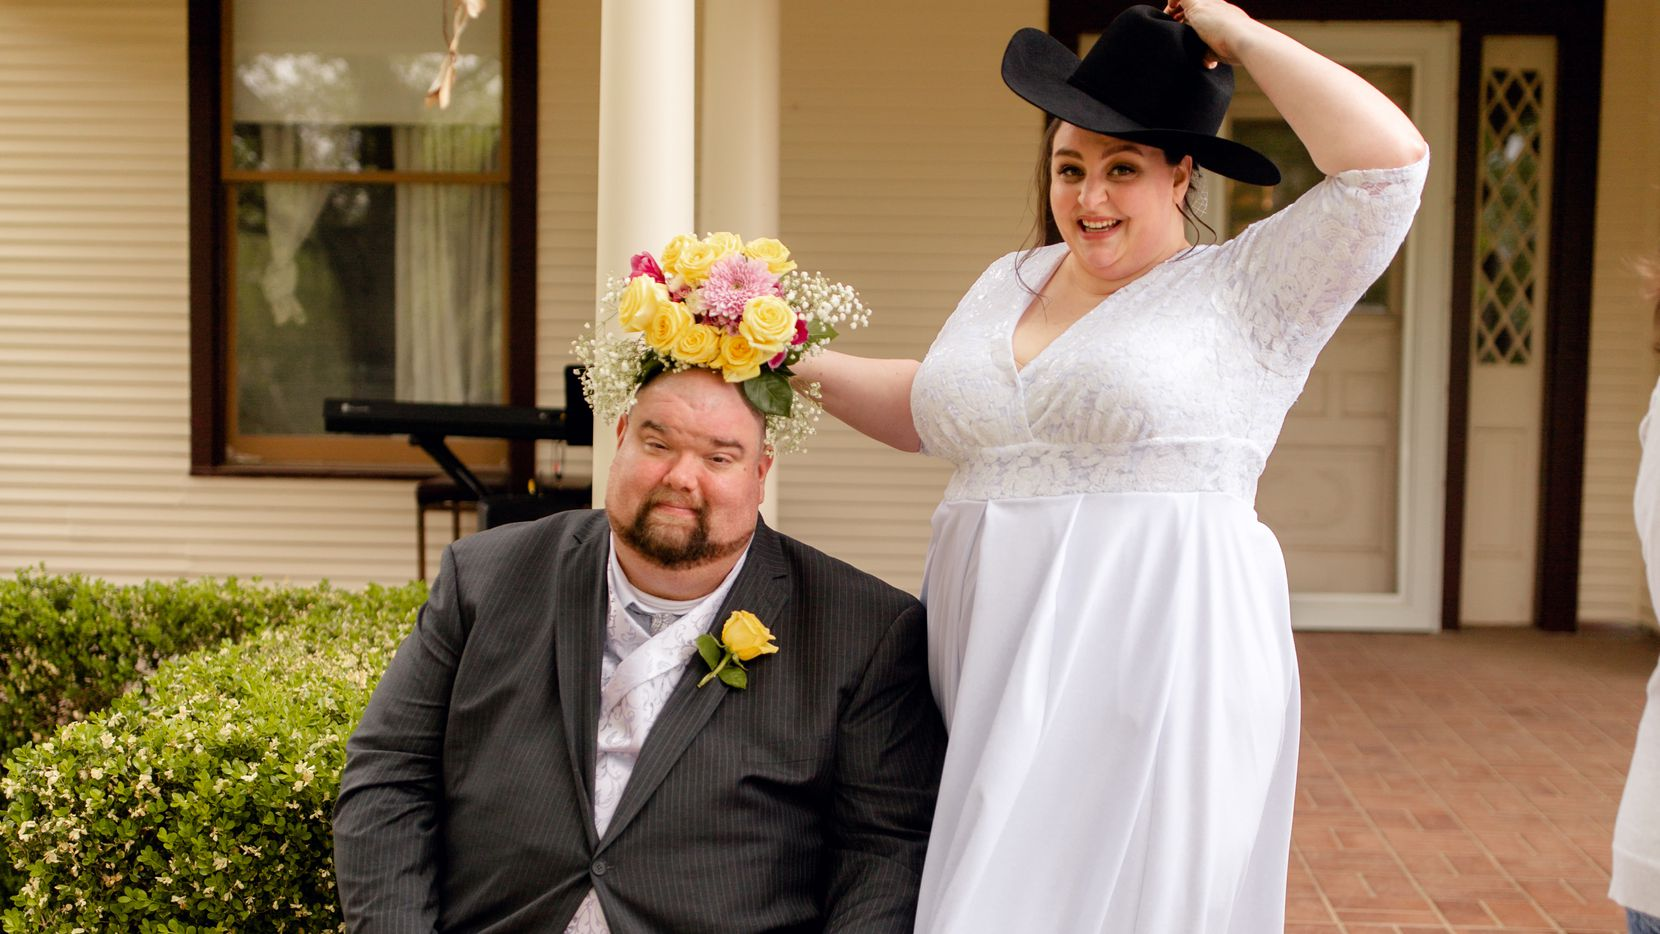 Diann Maurer and Donovan Poe got married in April and decided against traditional wedding gifts, asking guests to instead contribute to the local St. Vincent de Paul pharmacy, which provides free medications to uninsured Texans in need. (Rachel Hicks)